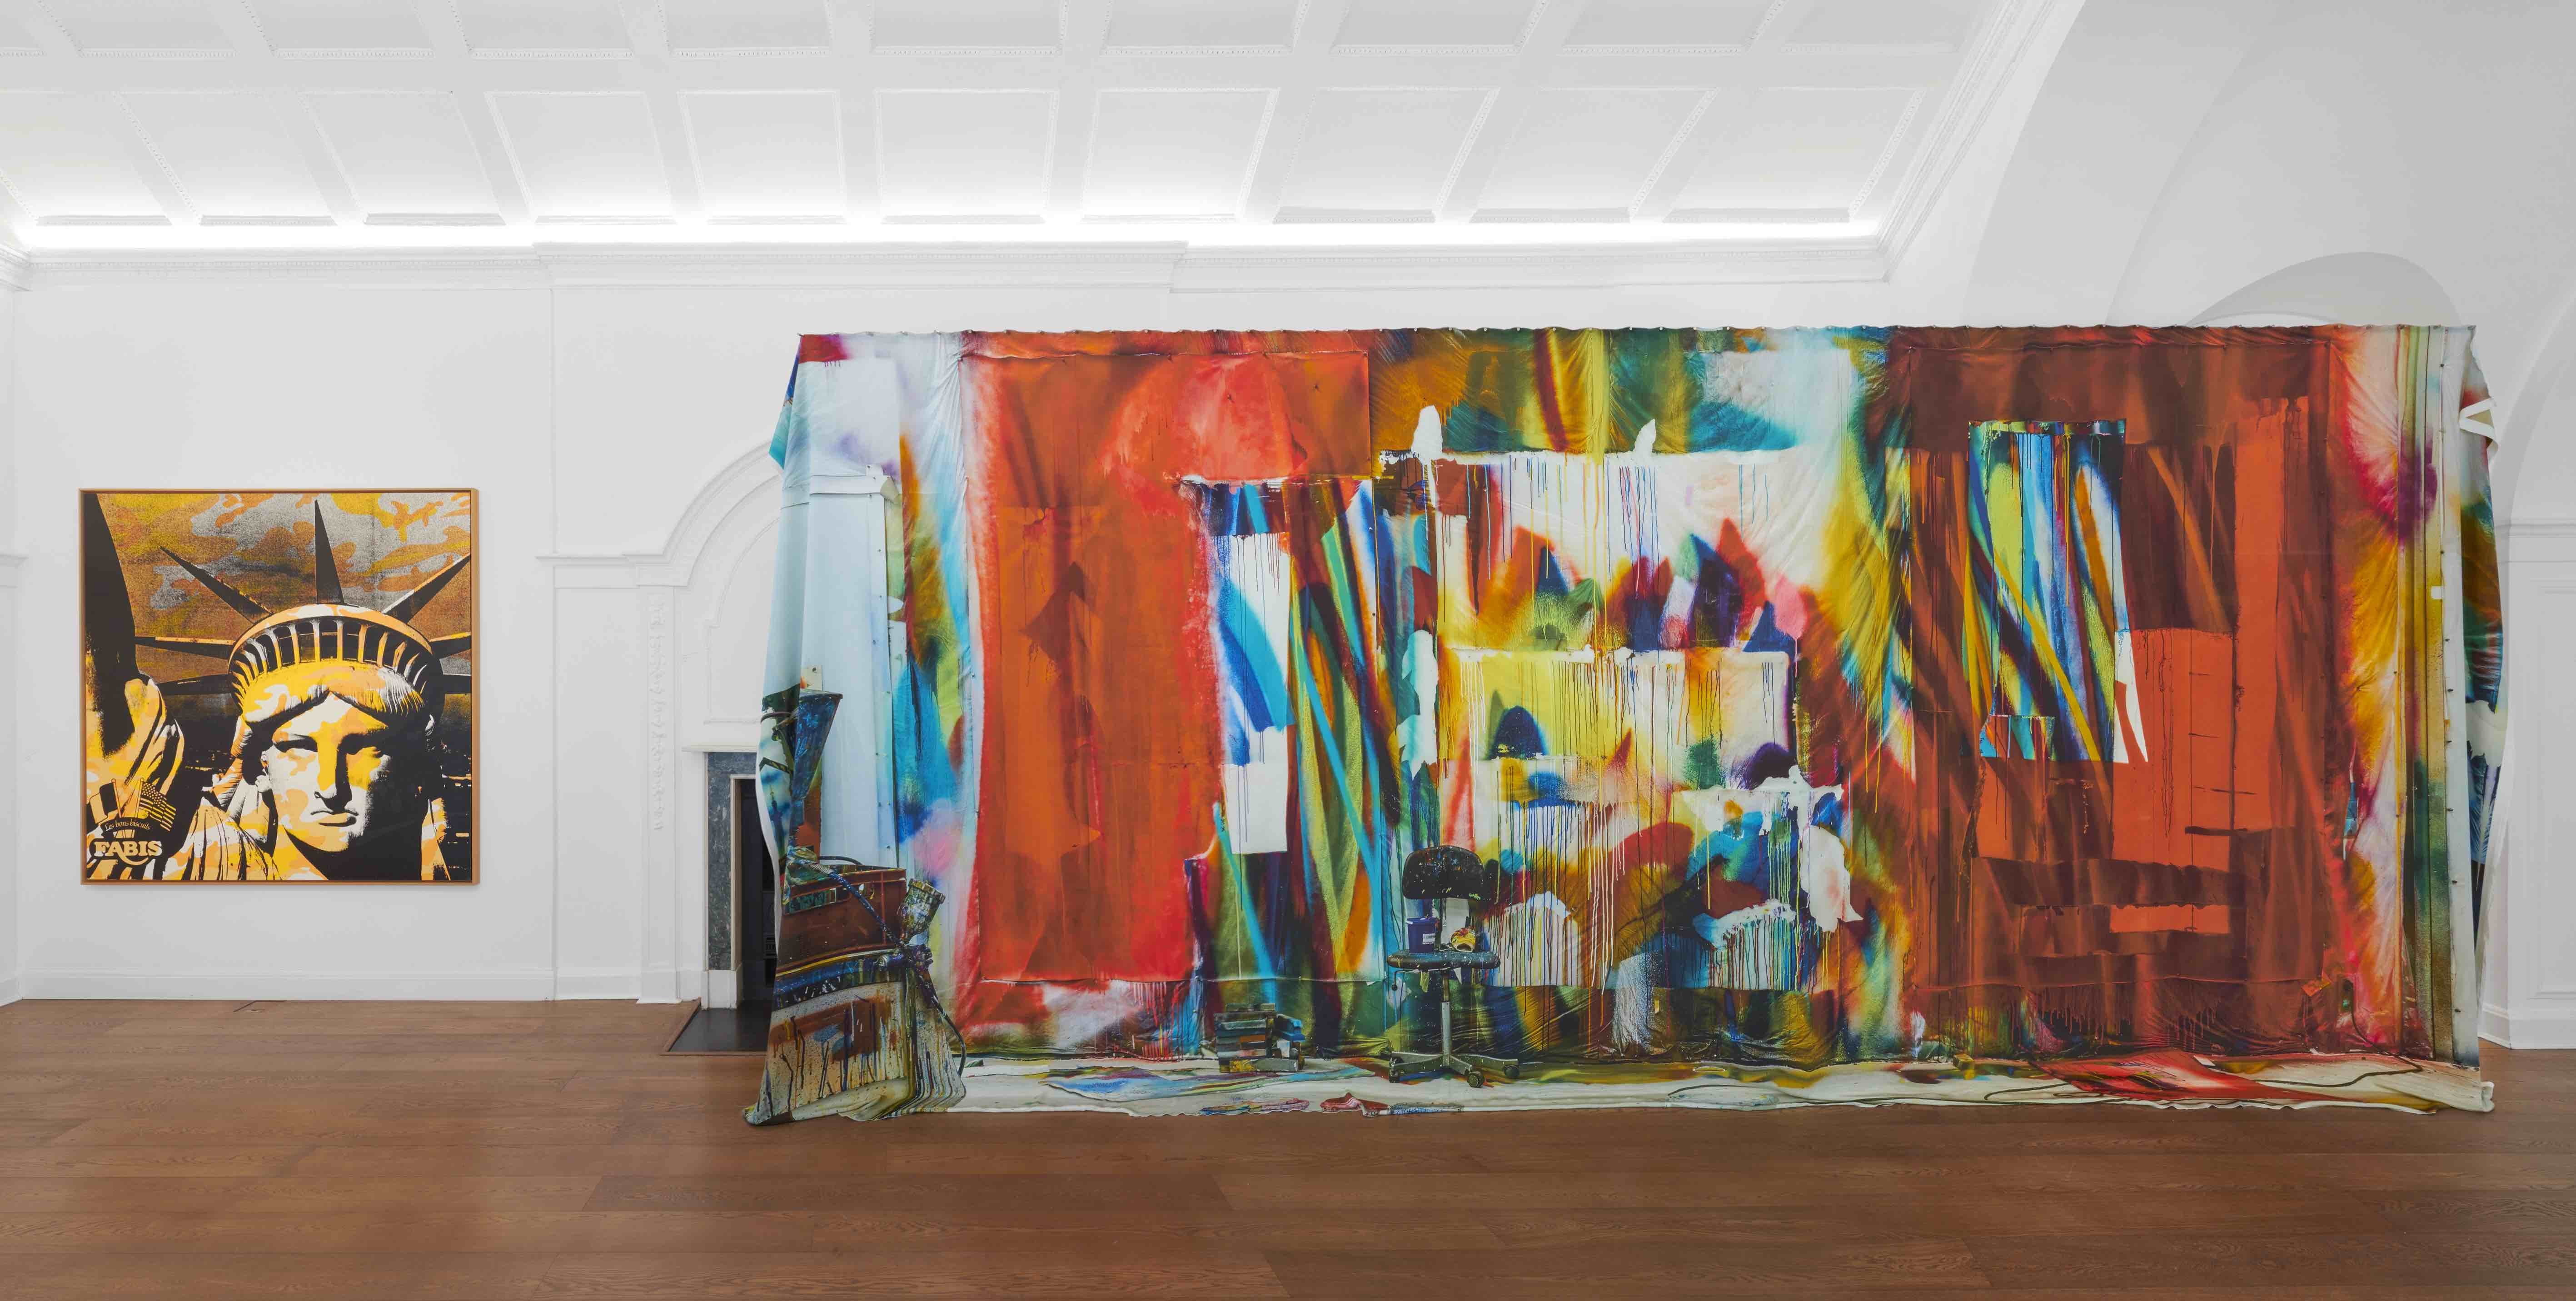 Installation view, Artists I Steal From, curated by Alvaro Barrington and Julia Peyton-Jones, Galerie Thaddaeus Ropac, London, 5th June – 9th August 2019 Copyright the artists, courtesy Galerie Thaddaeus Ropac, London • Paris • Salzburg Photo: Ben Westoby